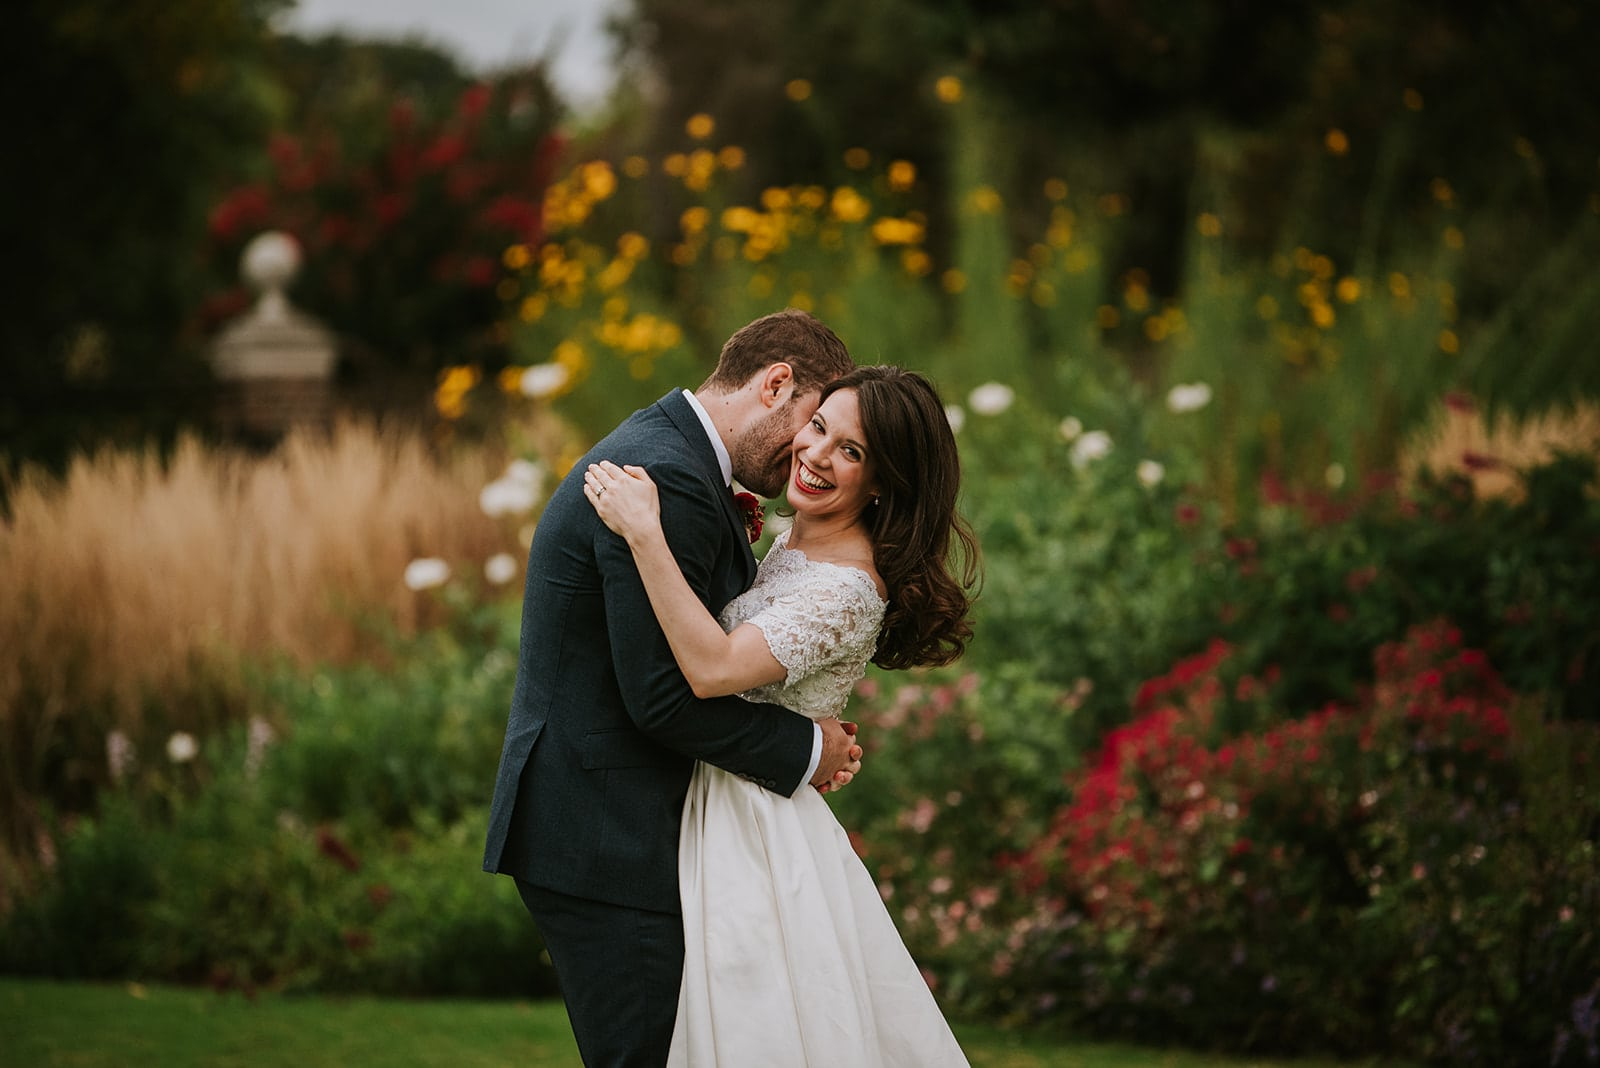 Bride and groom hugging surrounded by colourful flowers in a garden